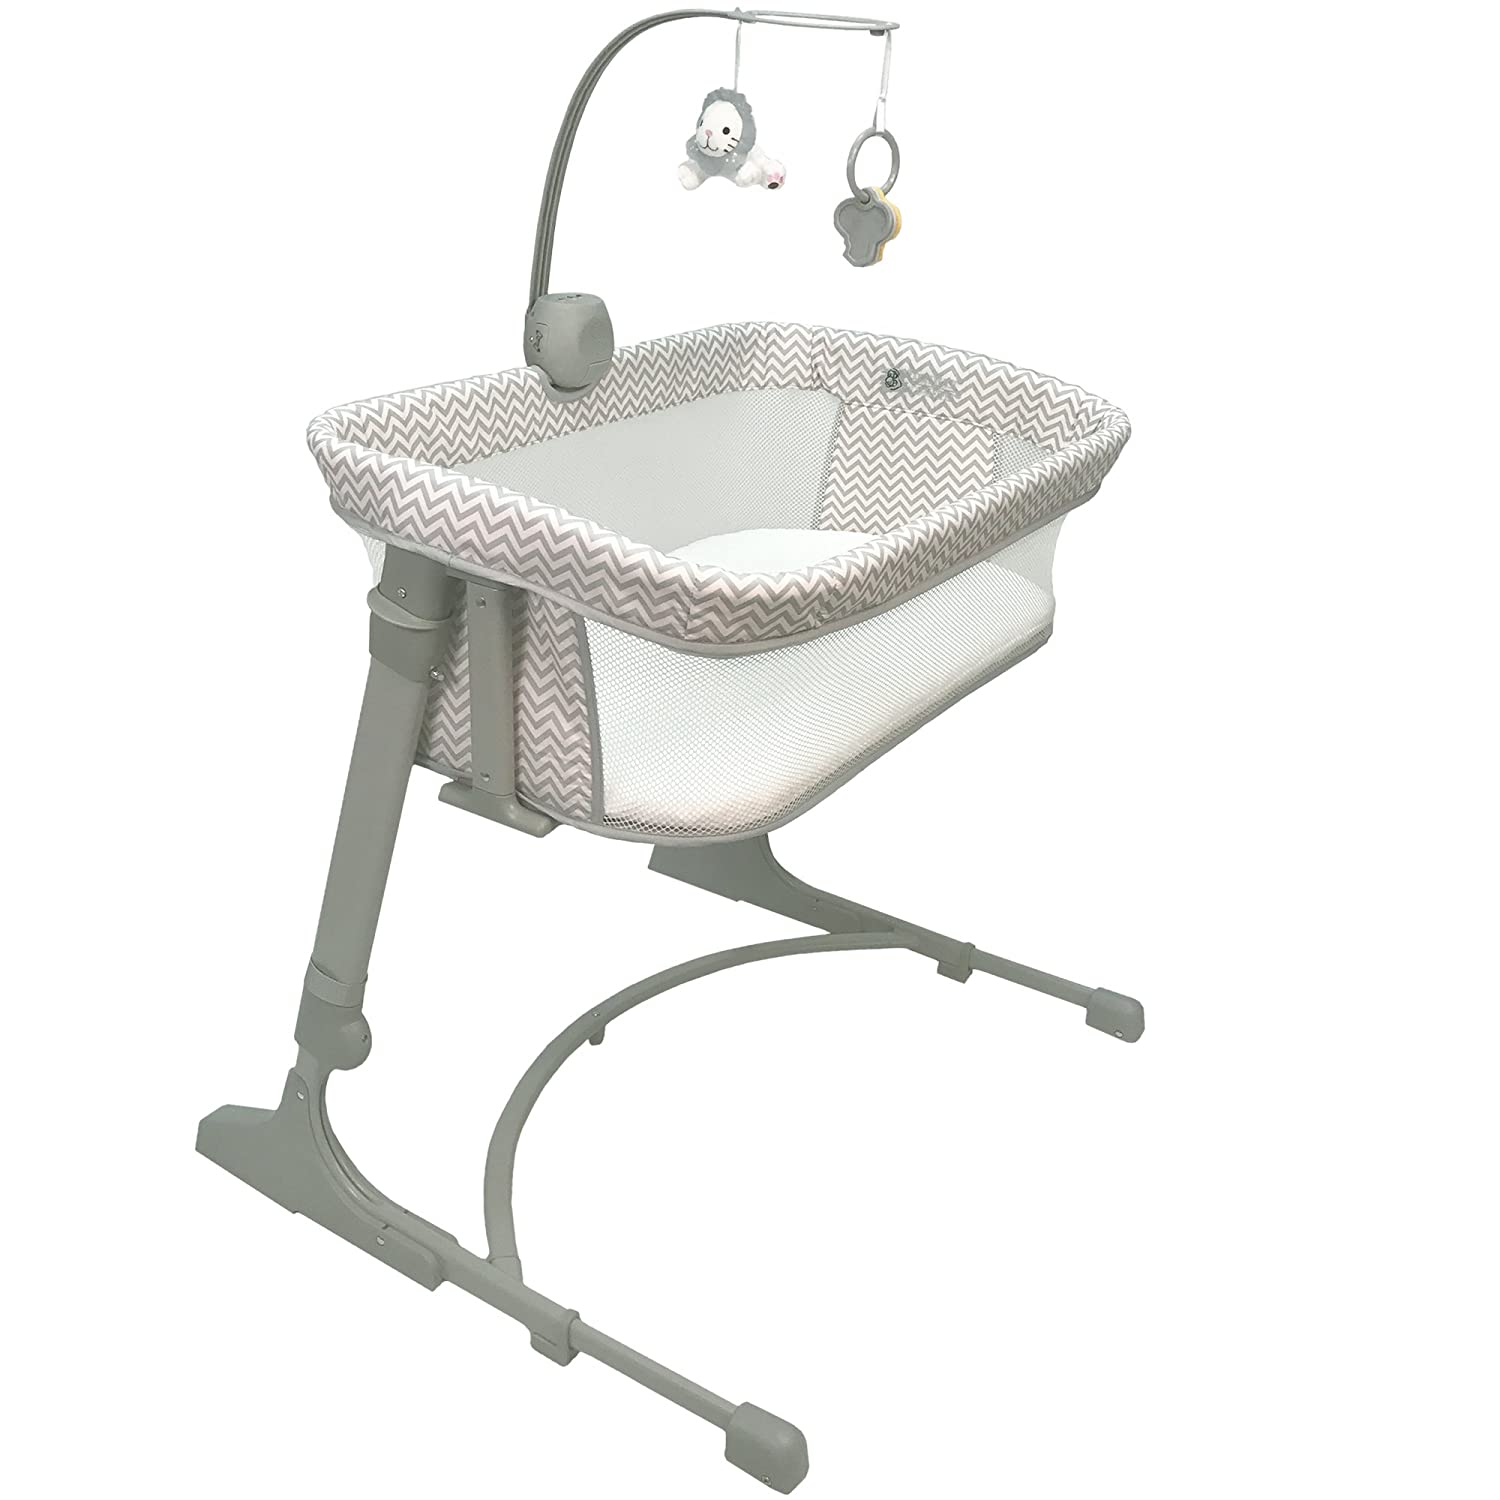 CoSleeper 7100-CV Versatile Bassinet - Chevron Grey One Size Arm' s Reach Concepts Inc.